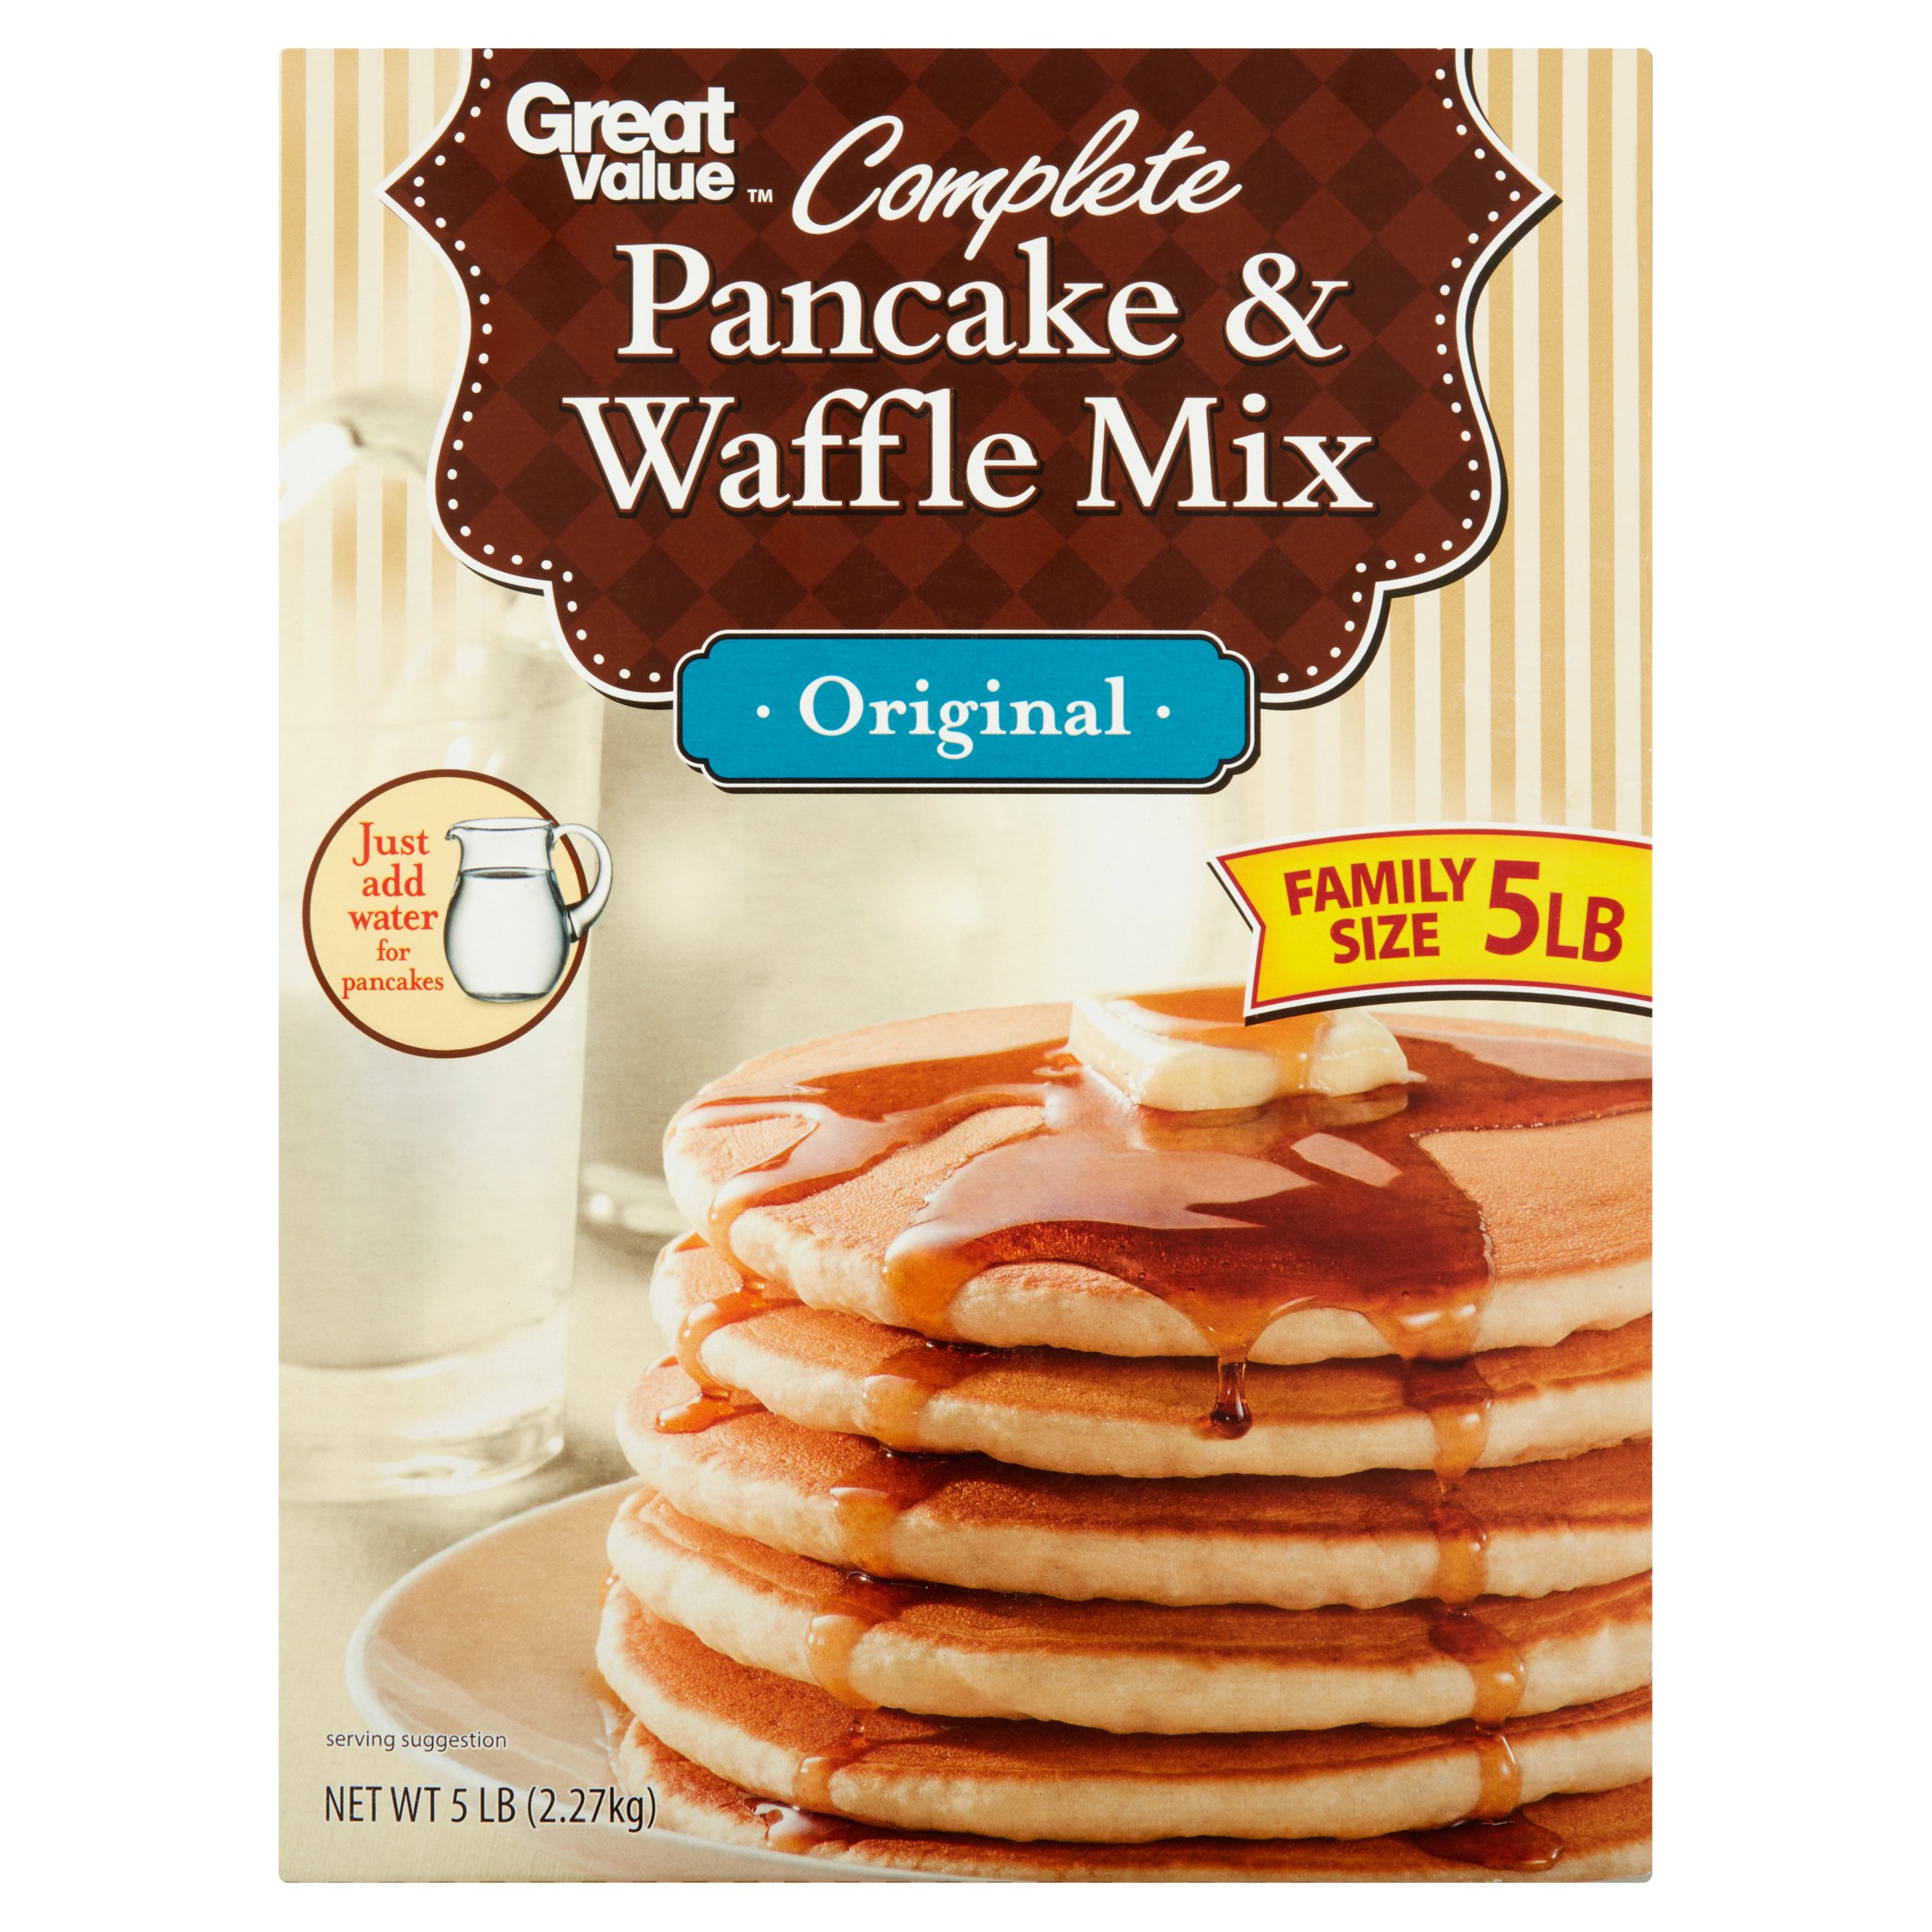 Great Value Original Pancake & Waffle Mix, 5 lbs by Wal-Mart Stores, Inc.